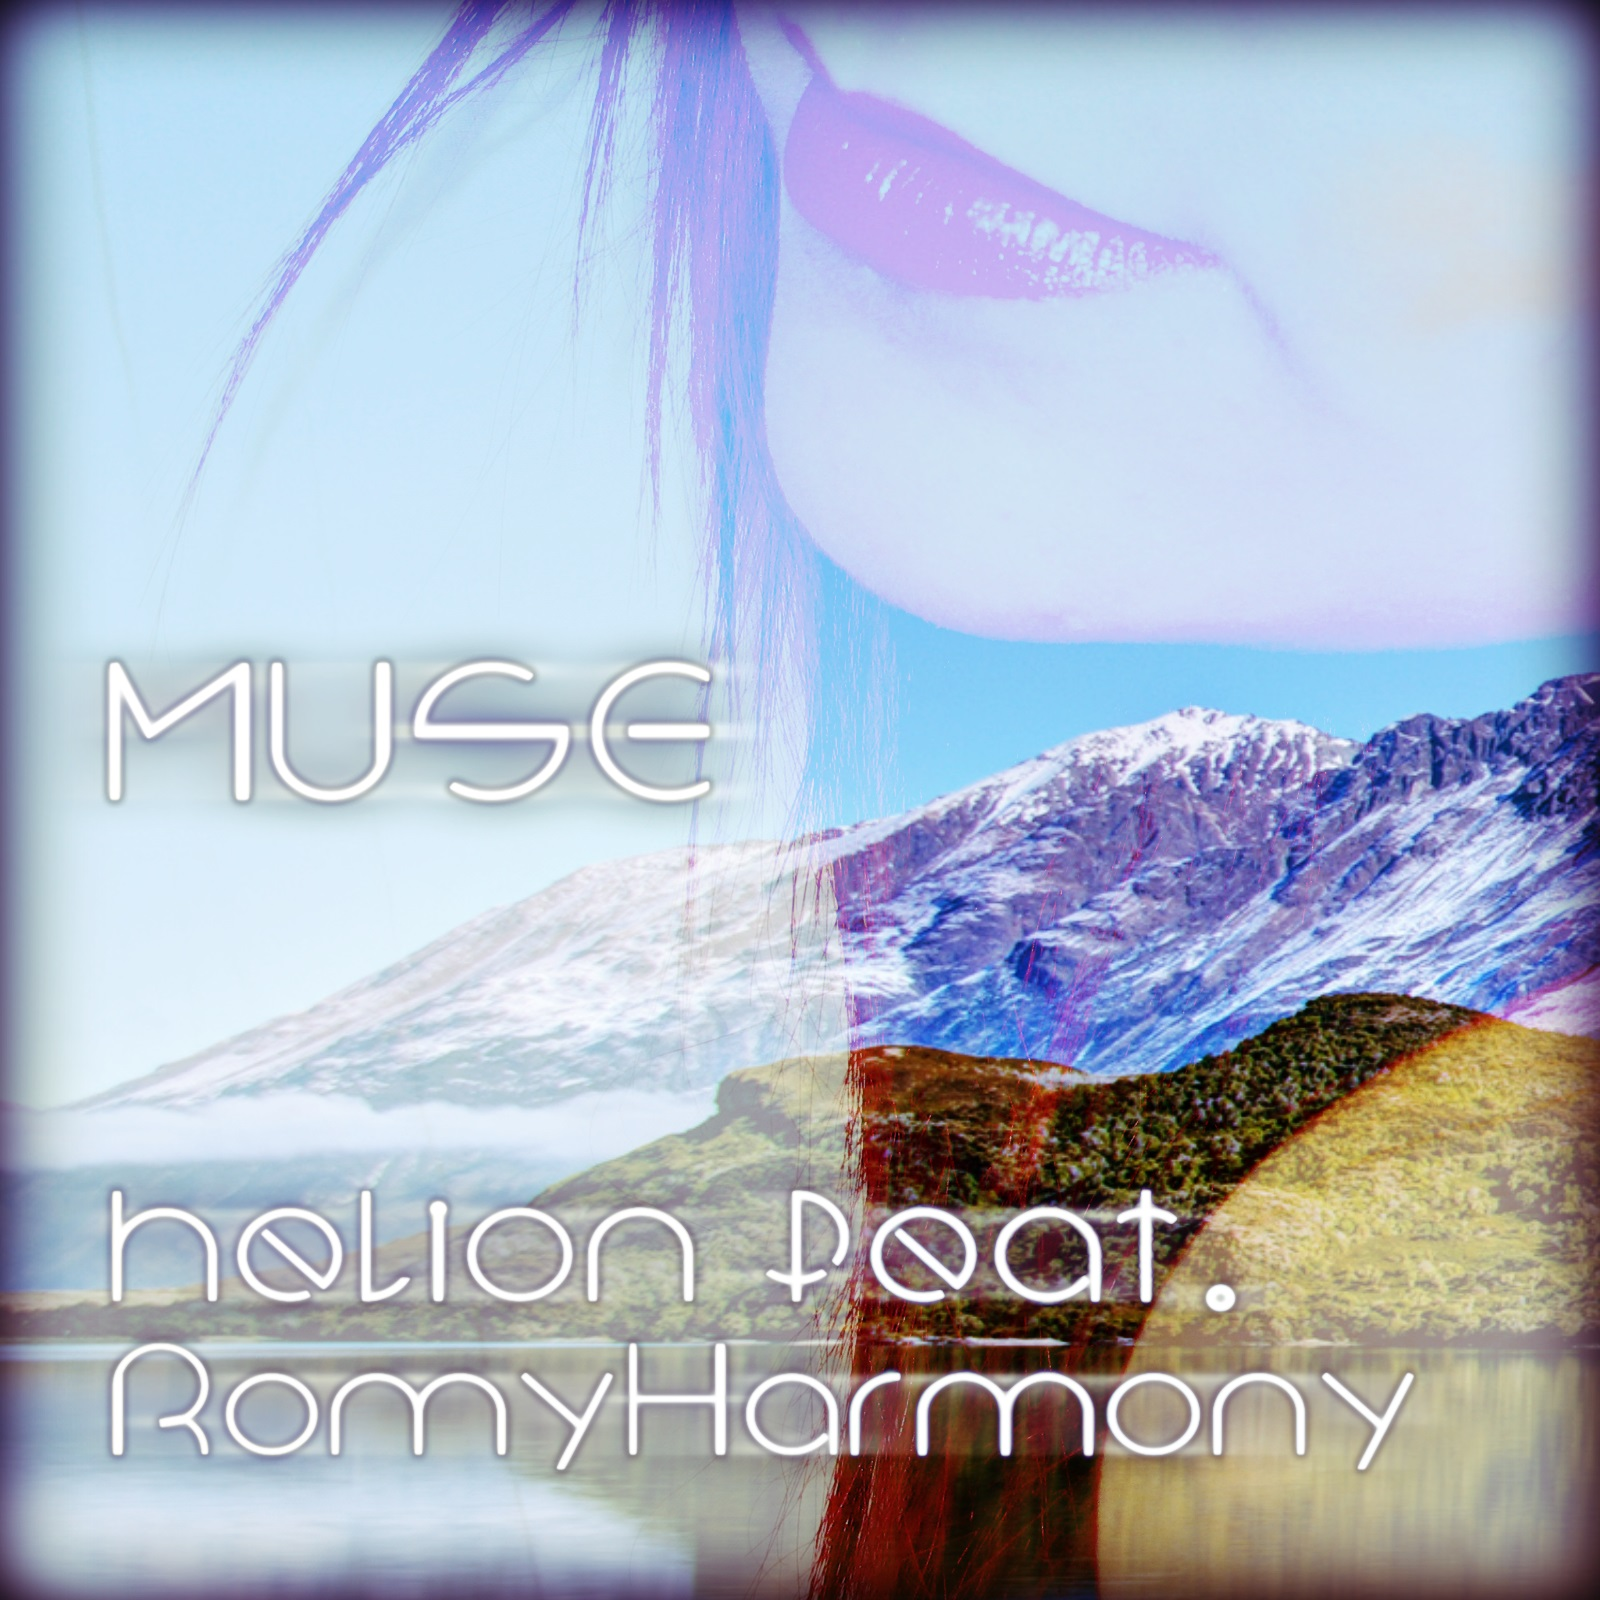 Helion ft. RomyHarmony - Muse - Single